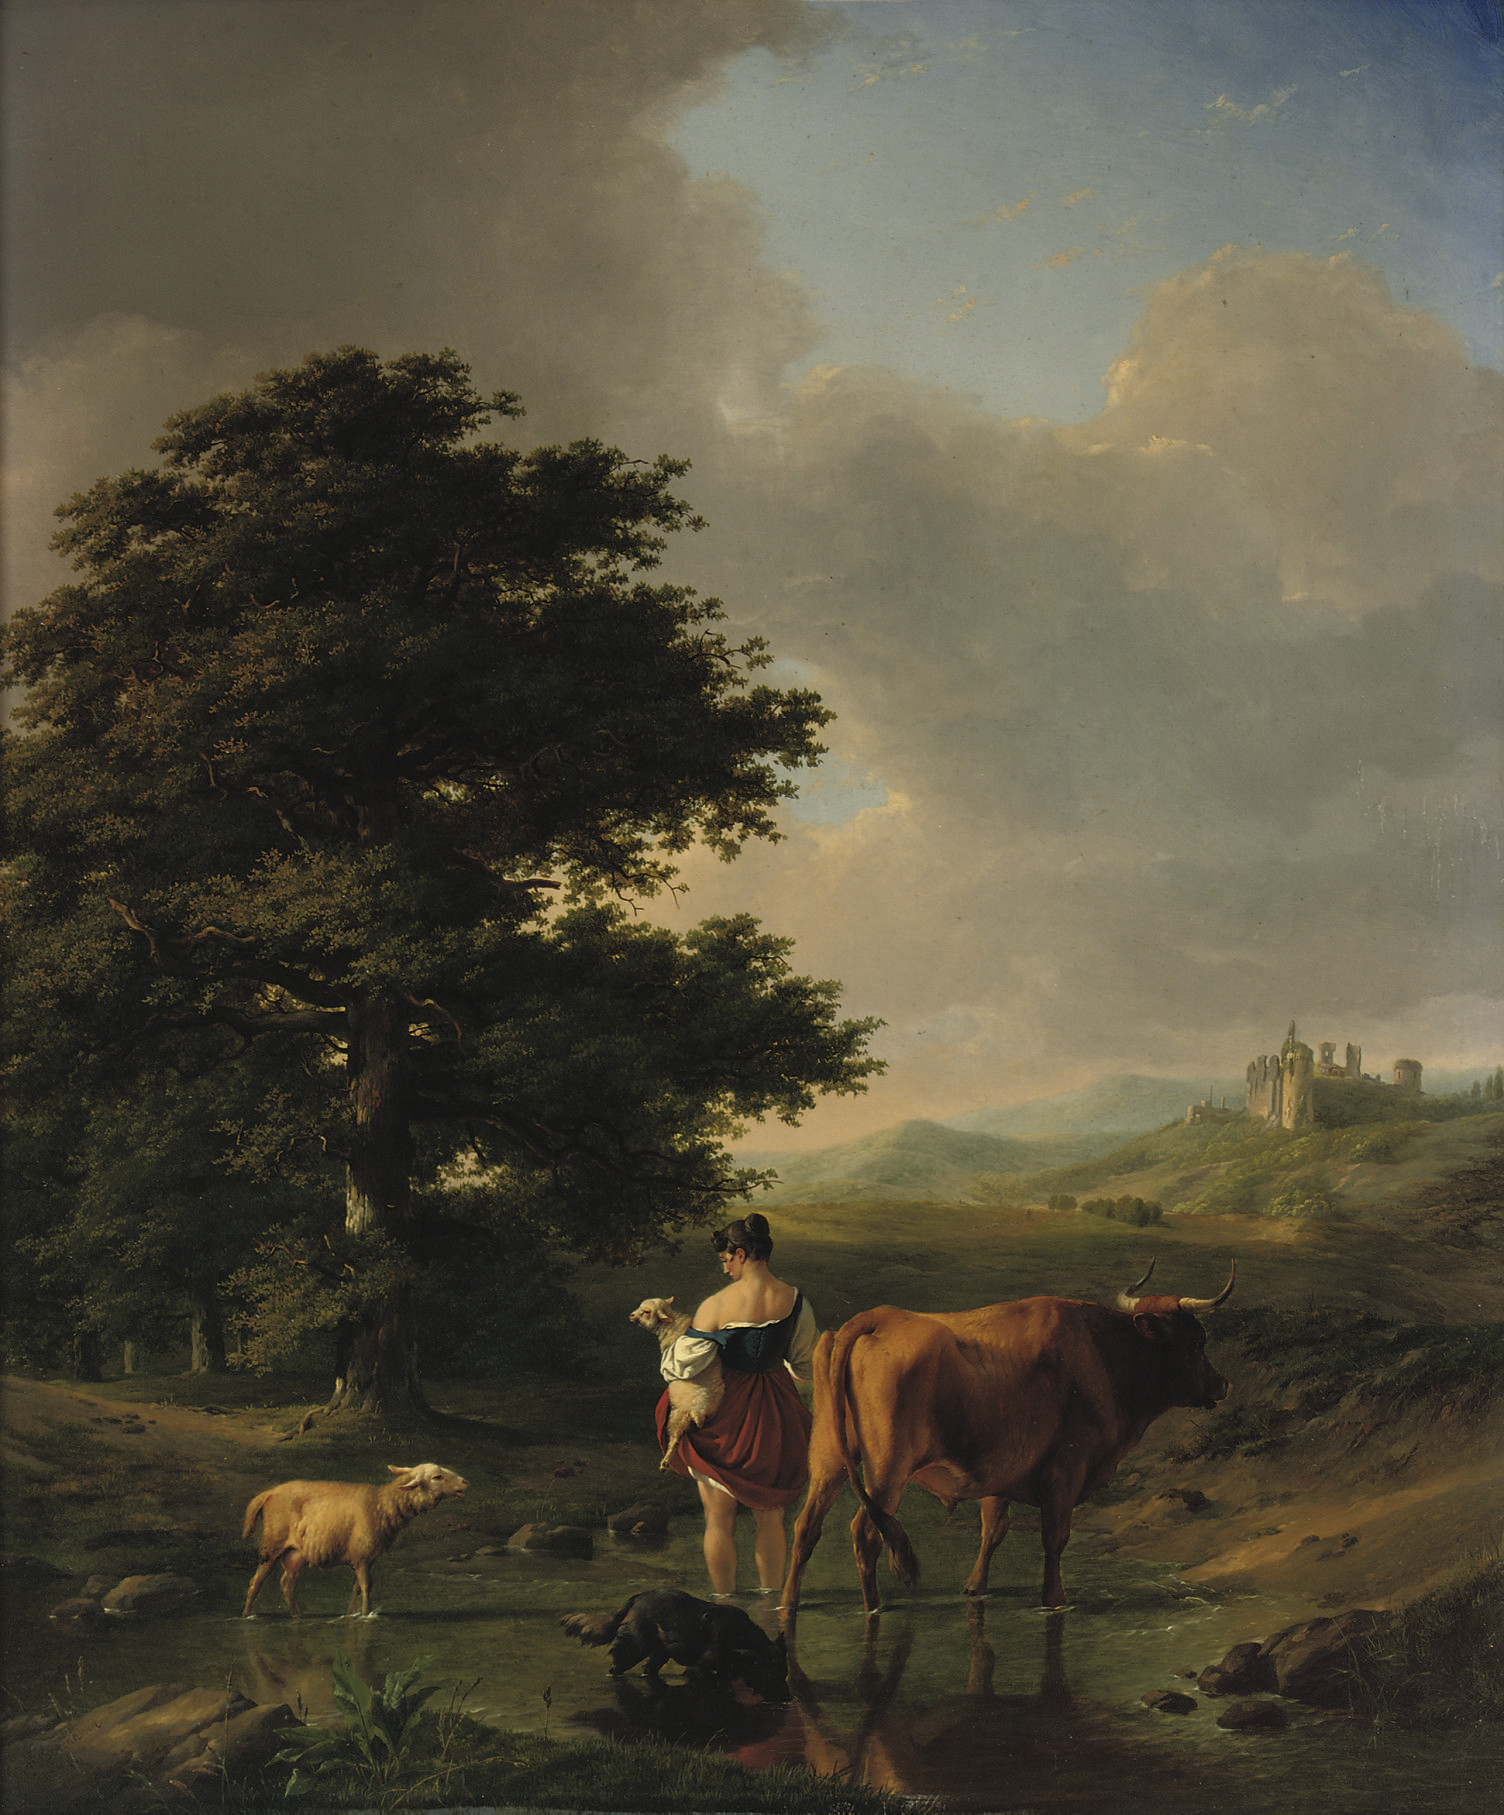 A woman and her cattle in an extensive summer landscape